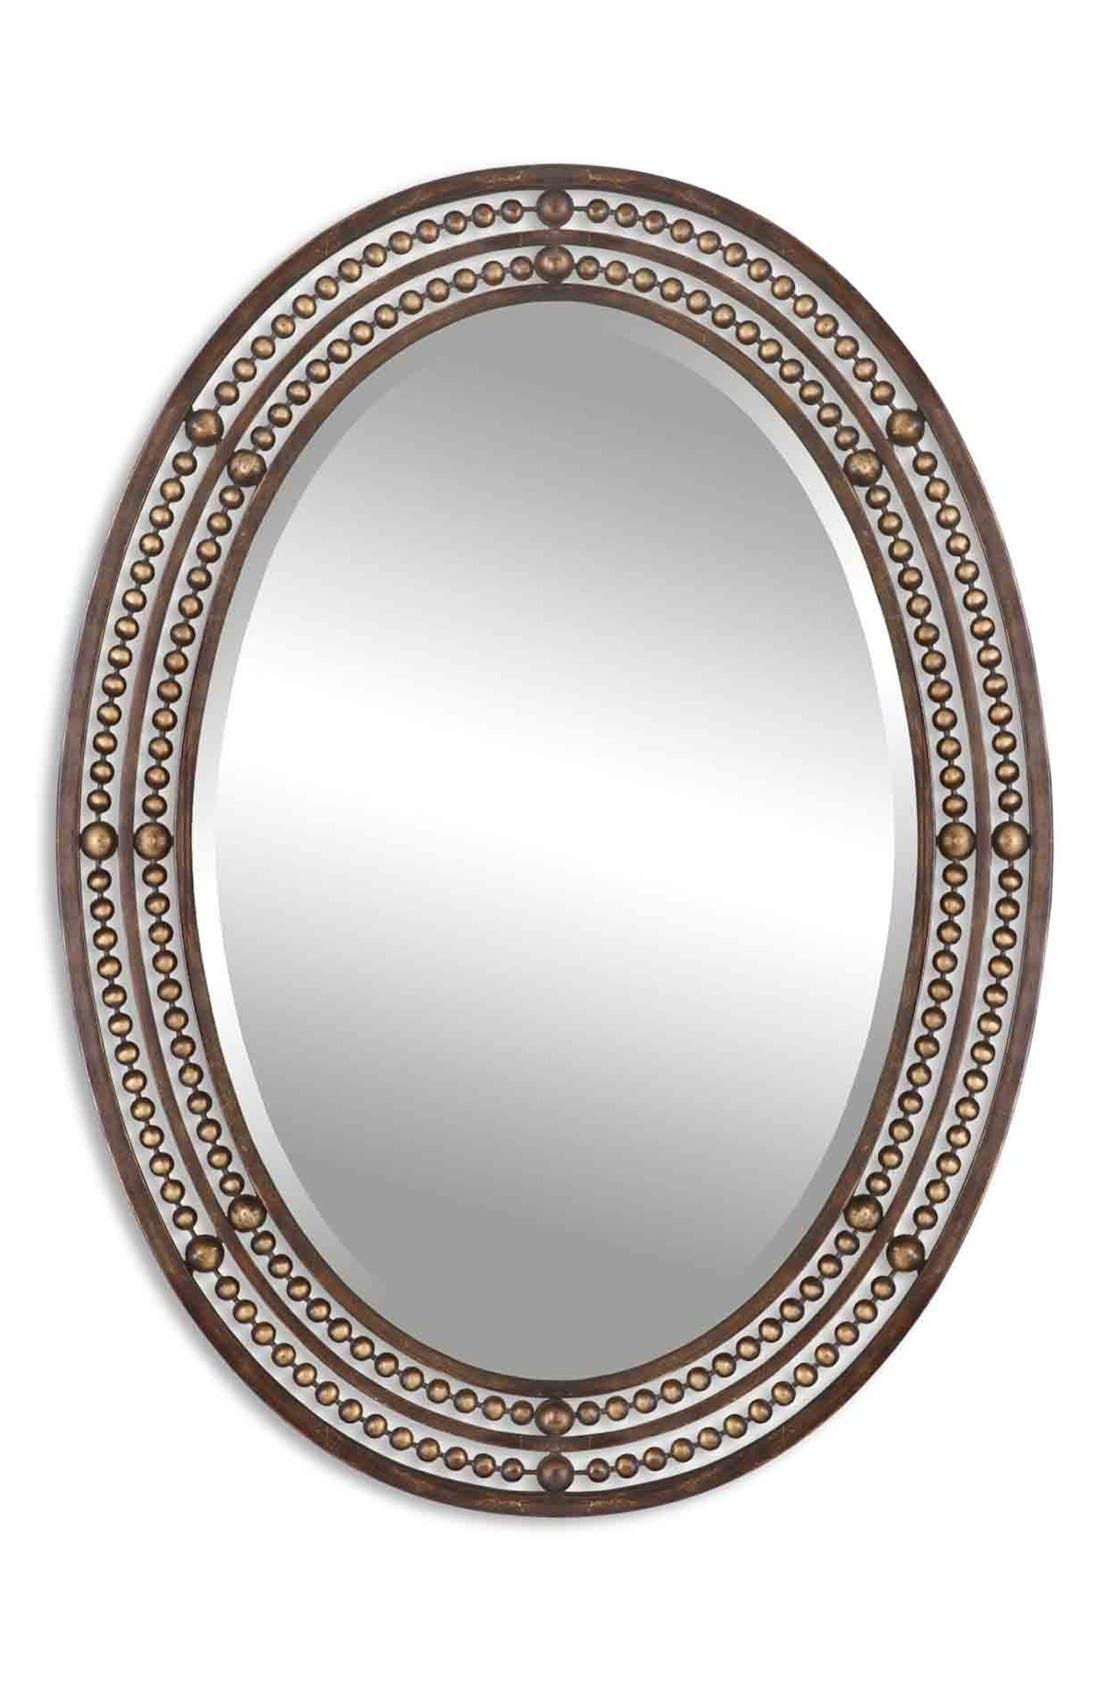 'Matney' Distressed Bronze Oval Wall Mirror,                         Main,                         color, Brown